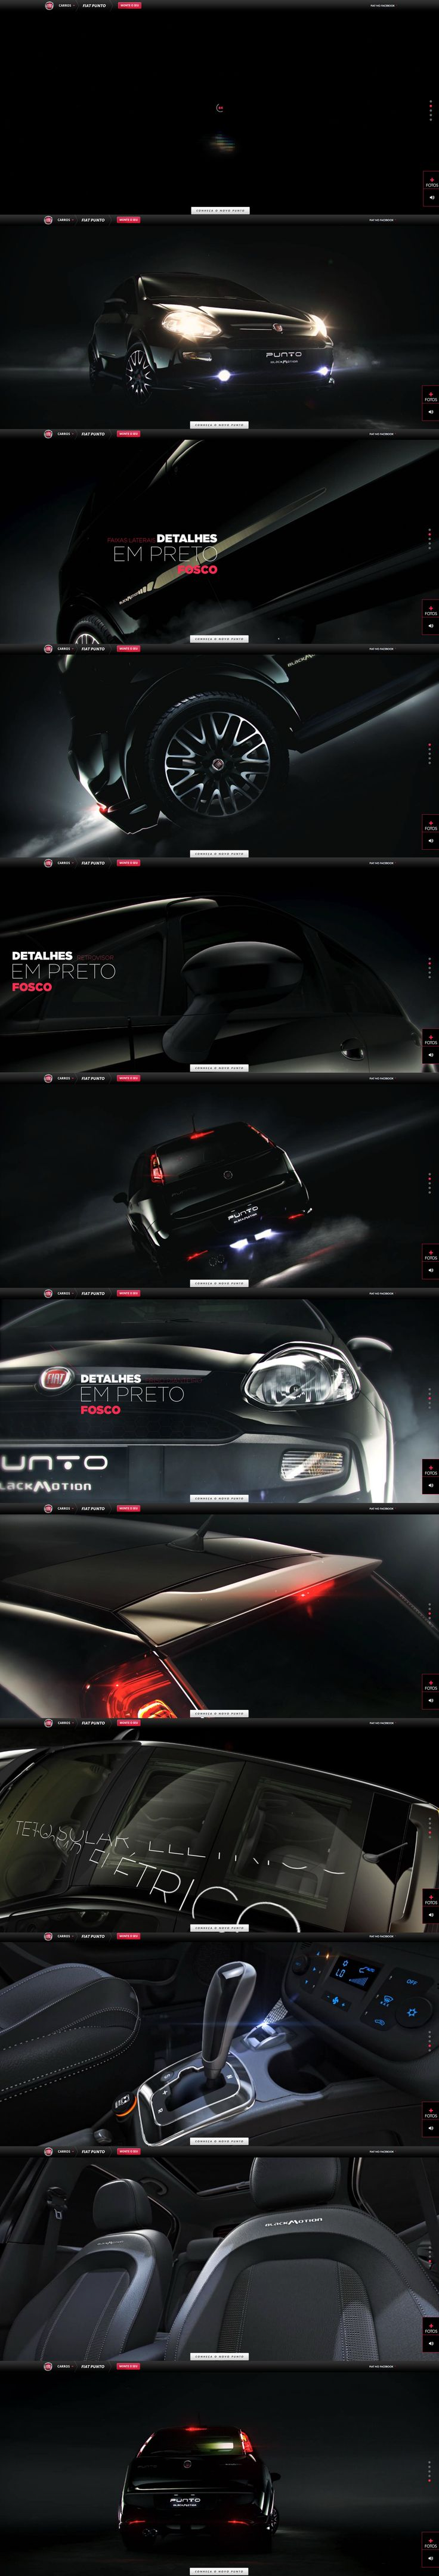 Cool Automotive Web Design